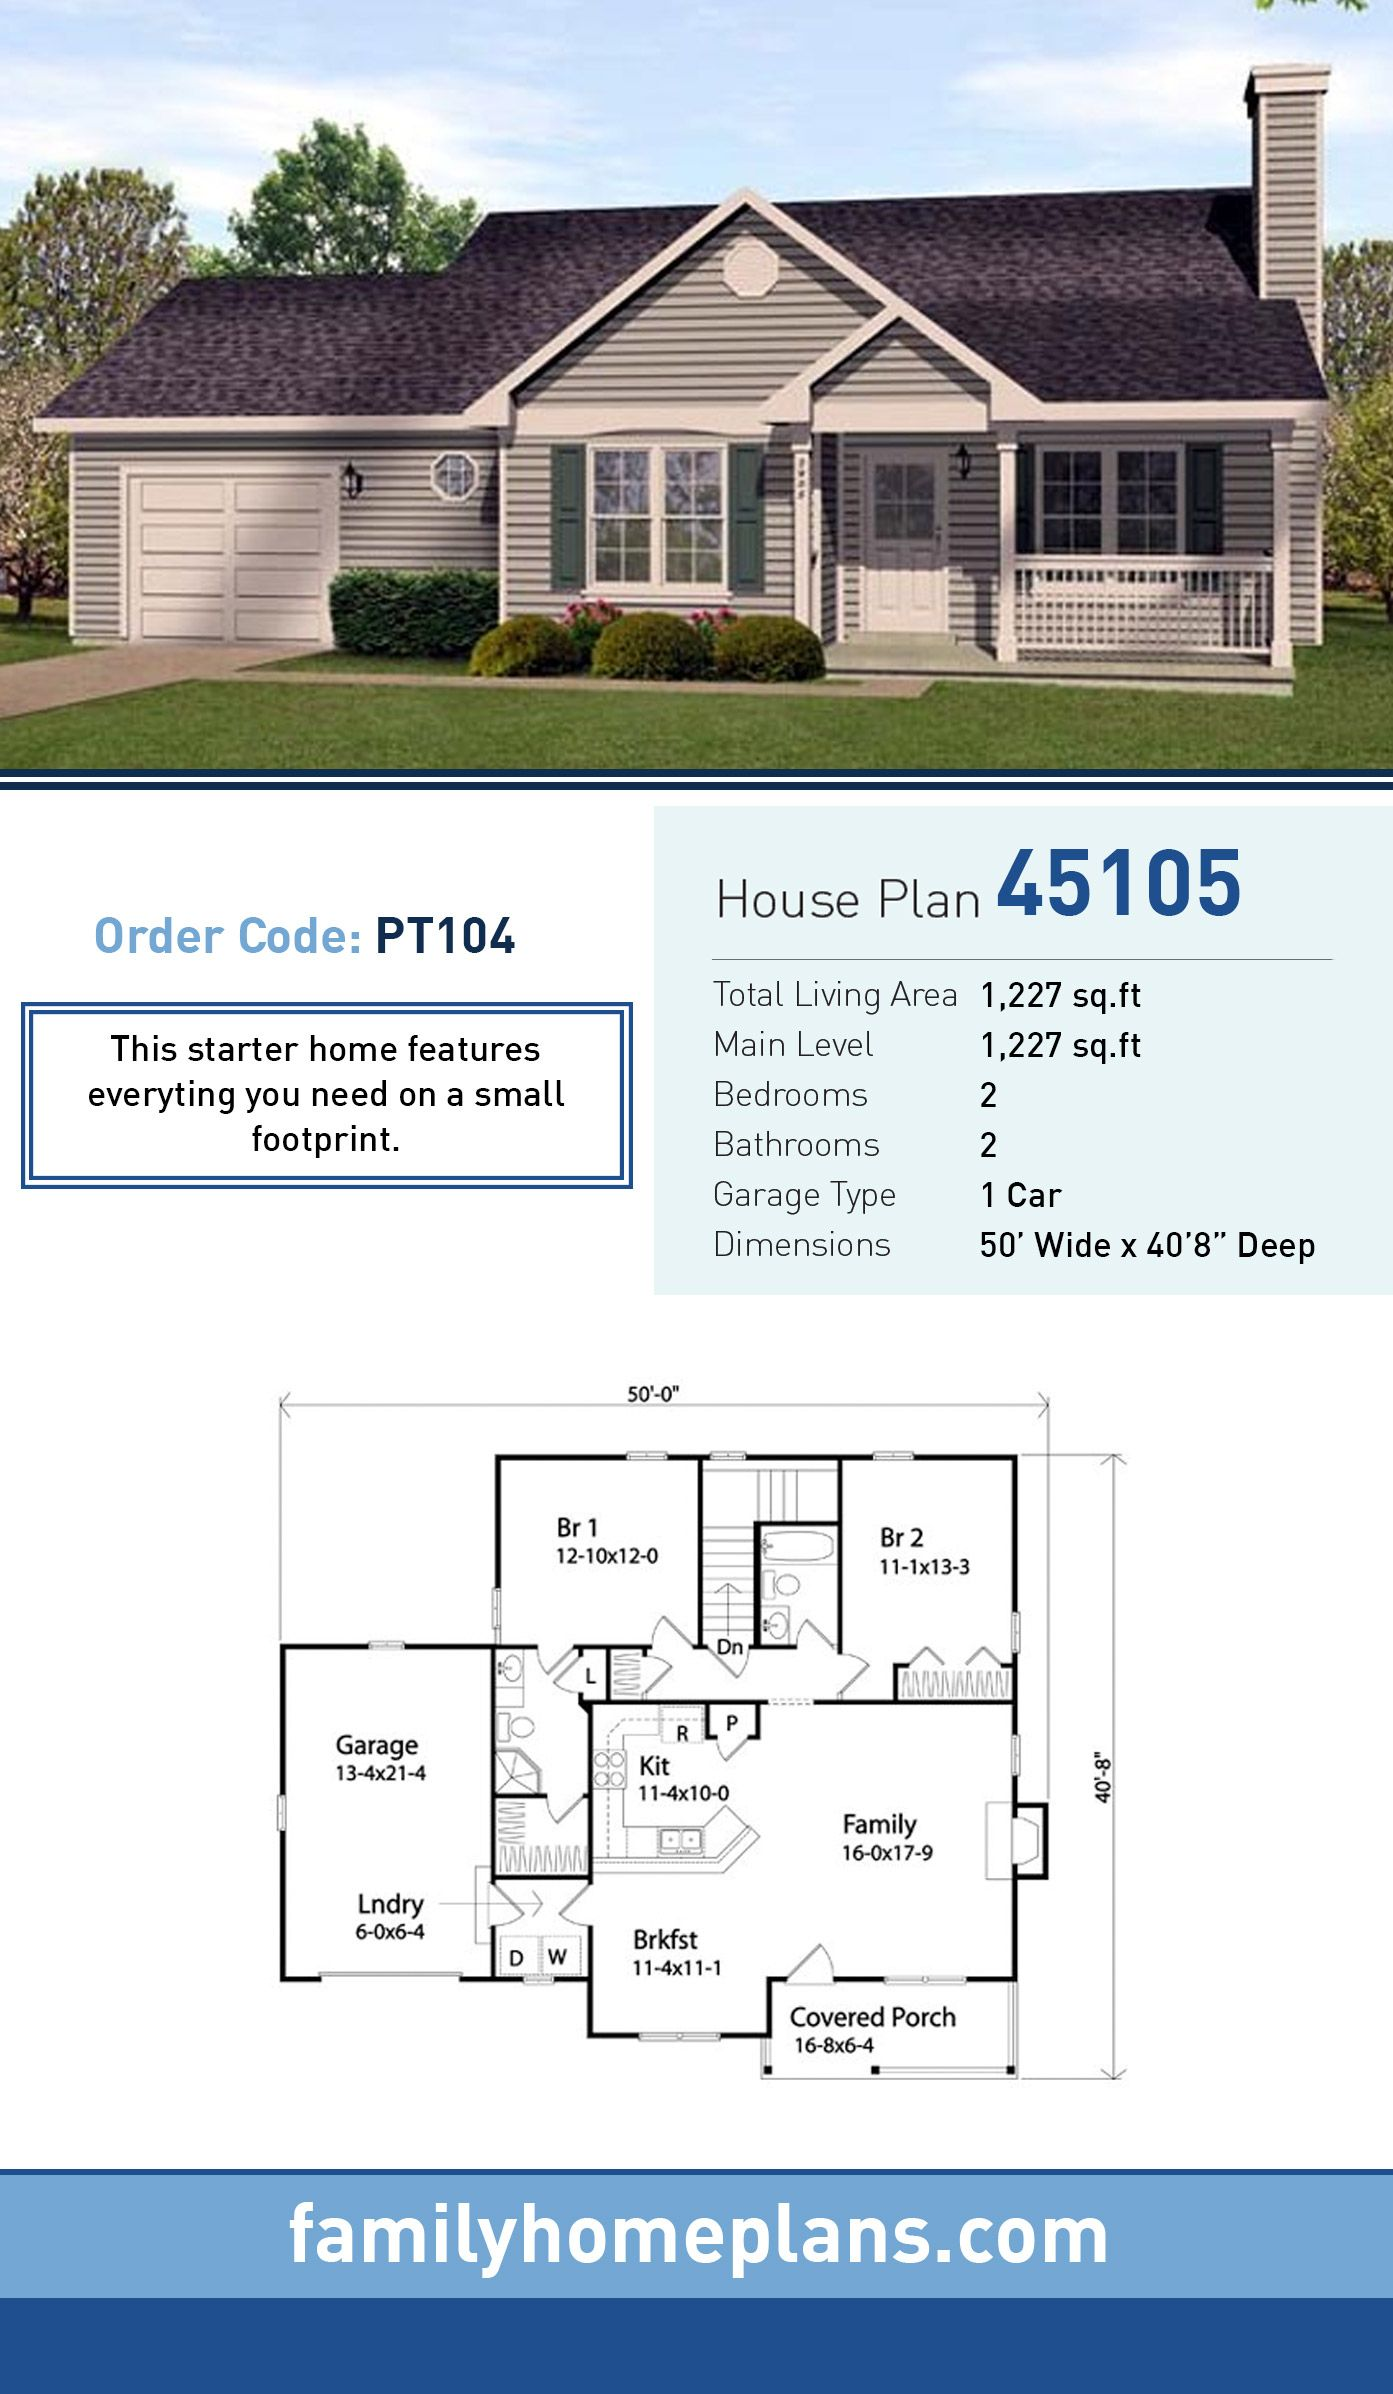 Traditional Style House Plan 45105 With 2 Bed 2 Bath 1 Car Garage Starter Home Plans Ranch Style House Plans Traditional House Plans